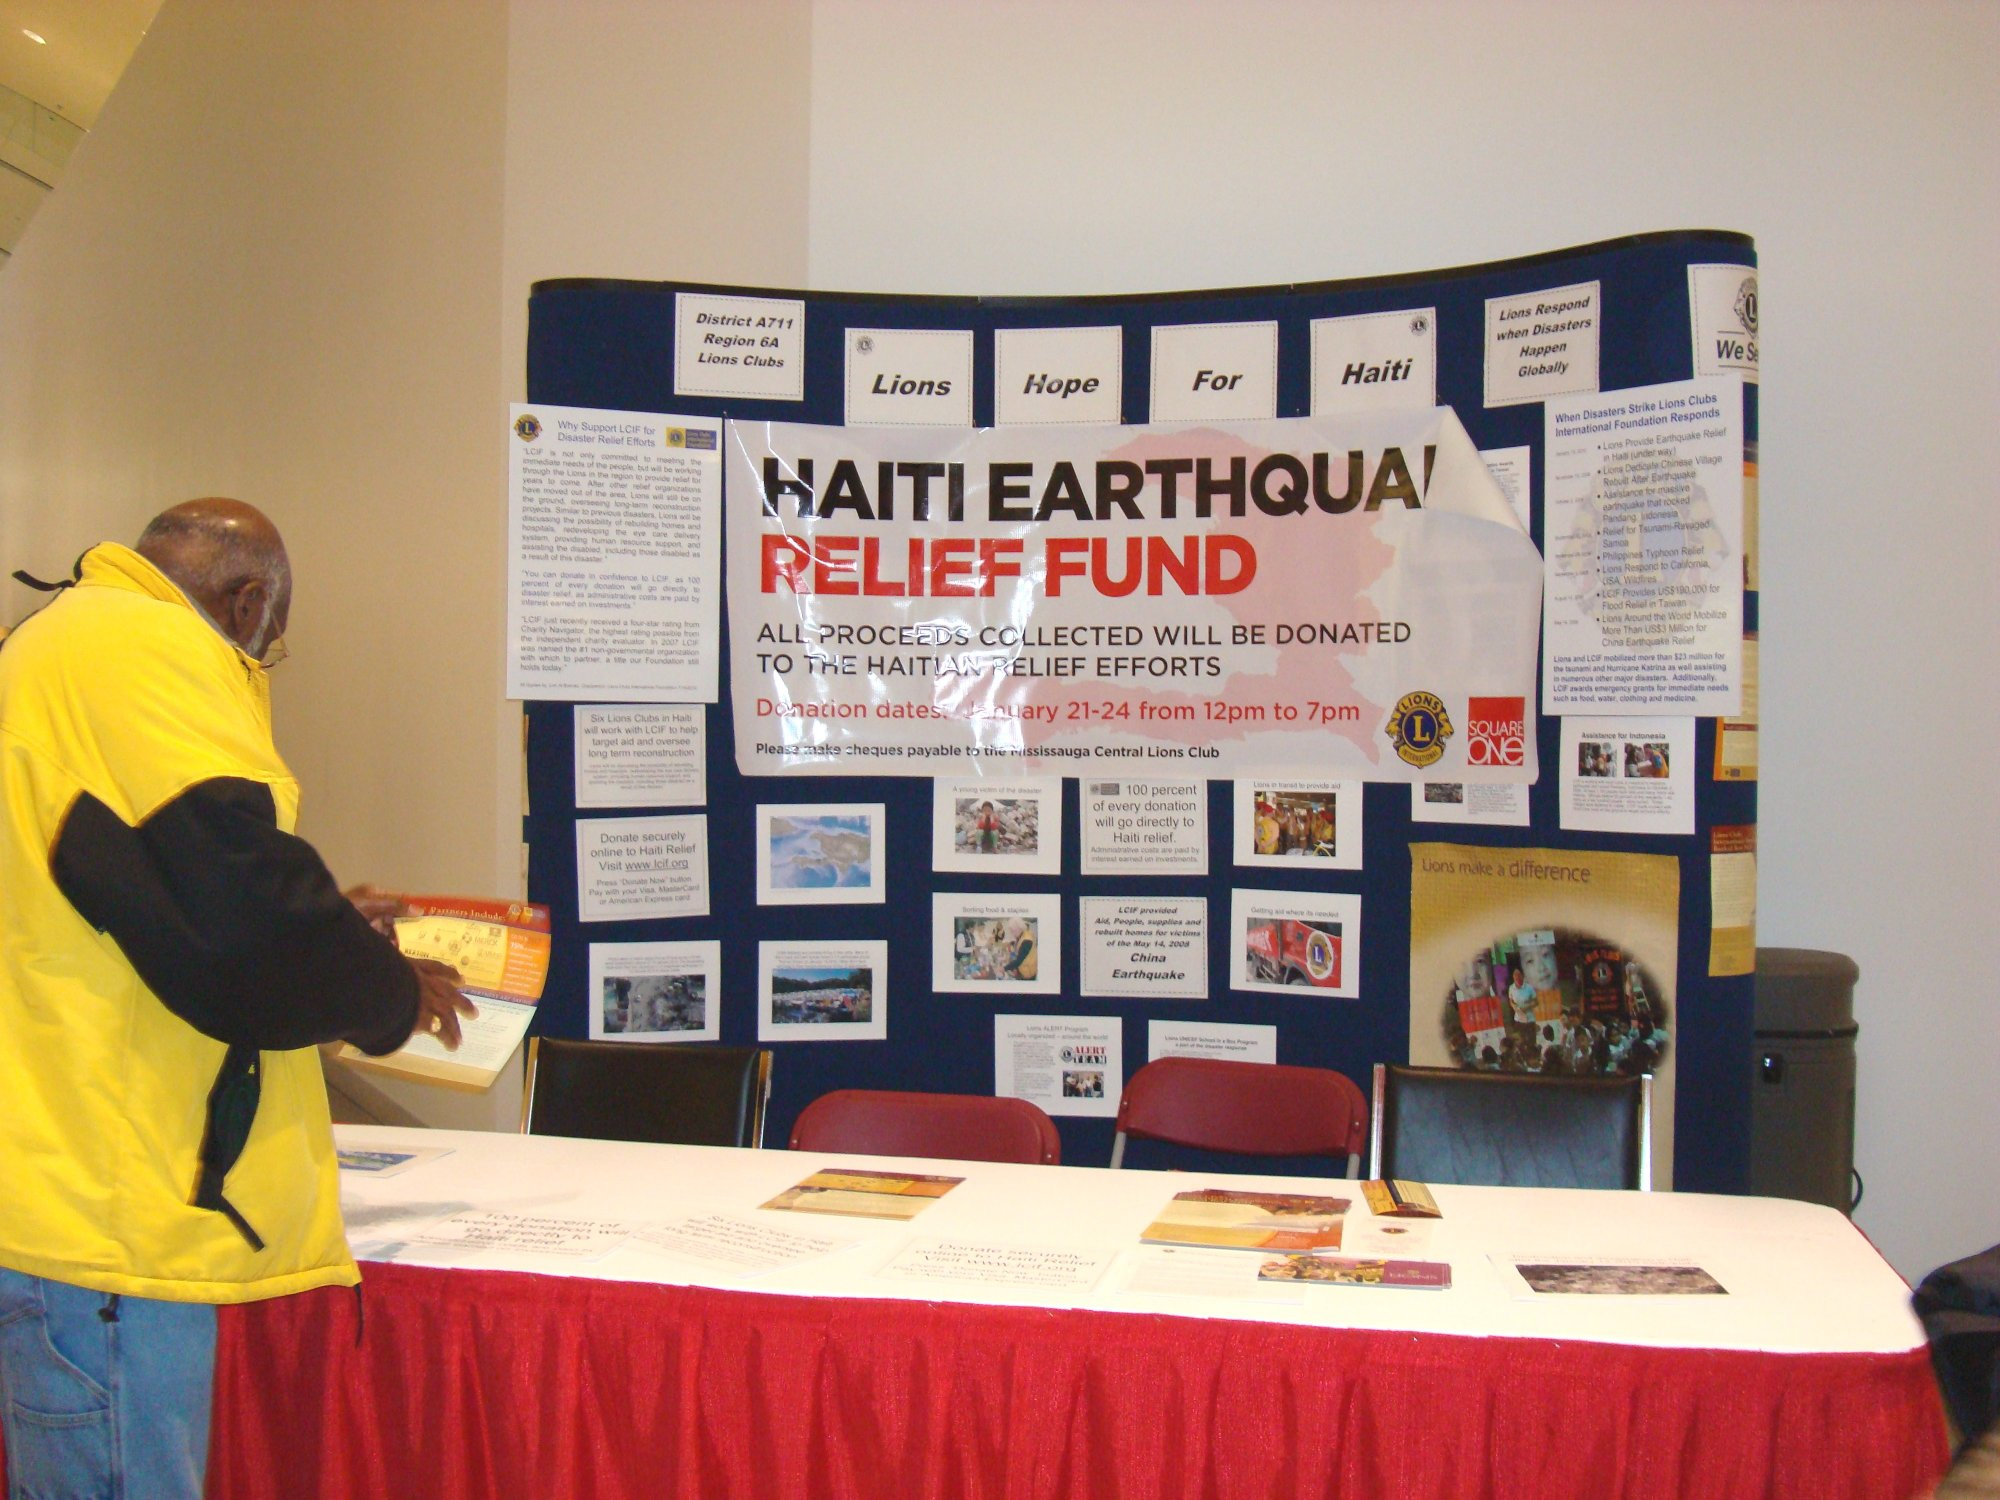 Lions Haiti Relief5 - 23Jan2010.jpg Square One Shopping Centre Upper Level Cityside Booth